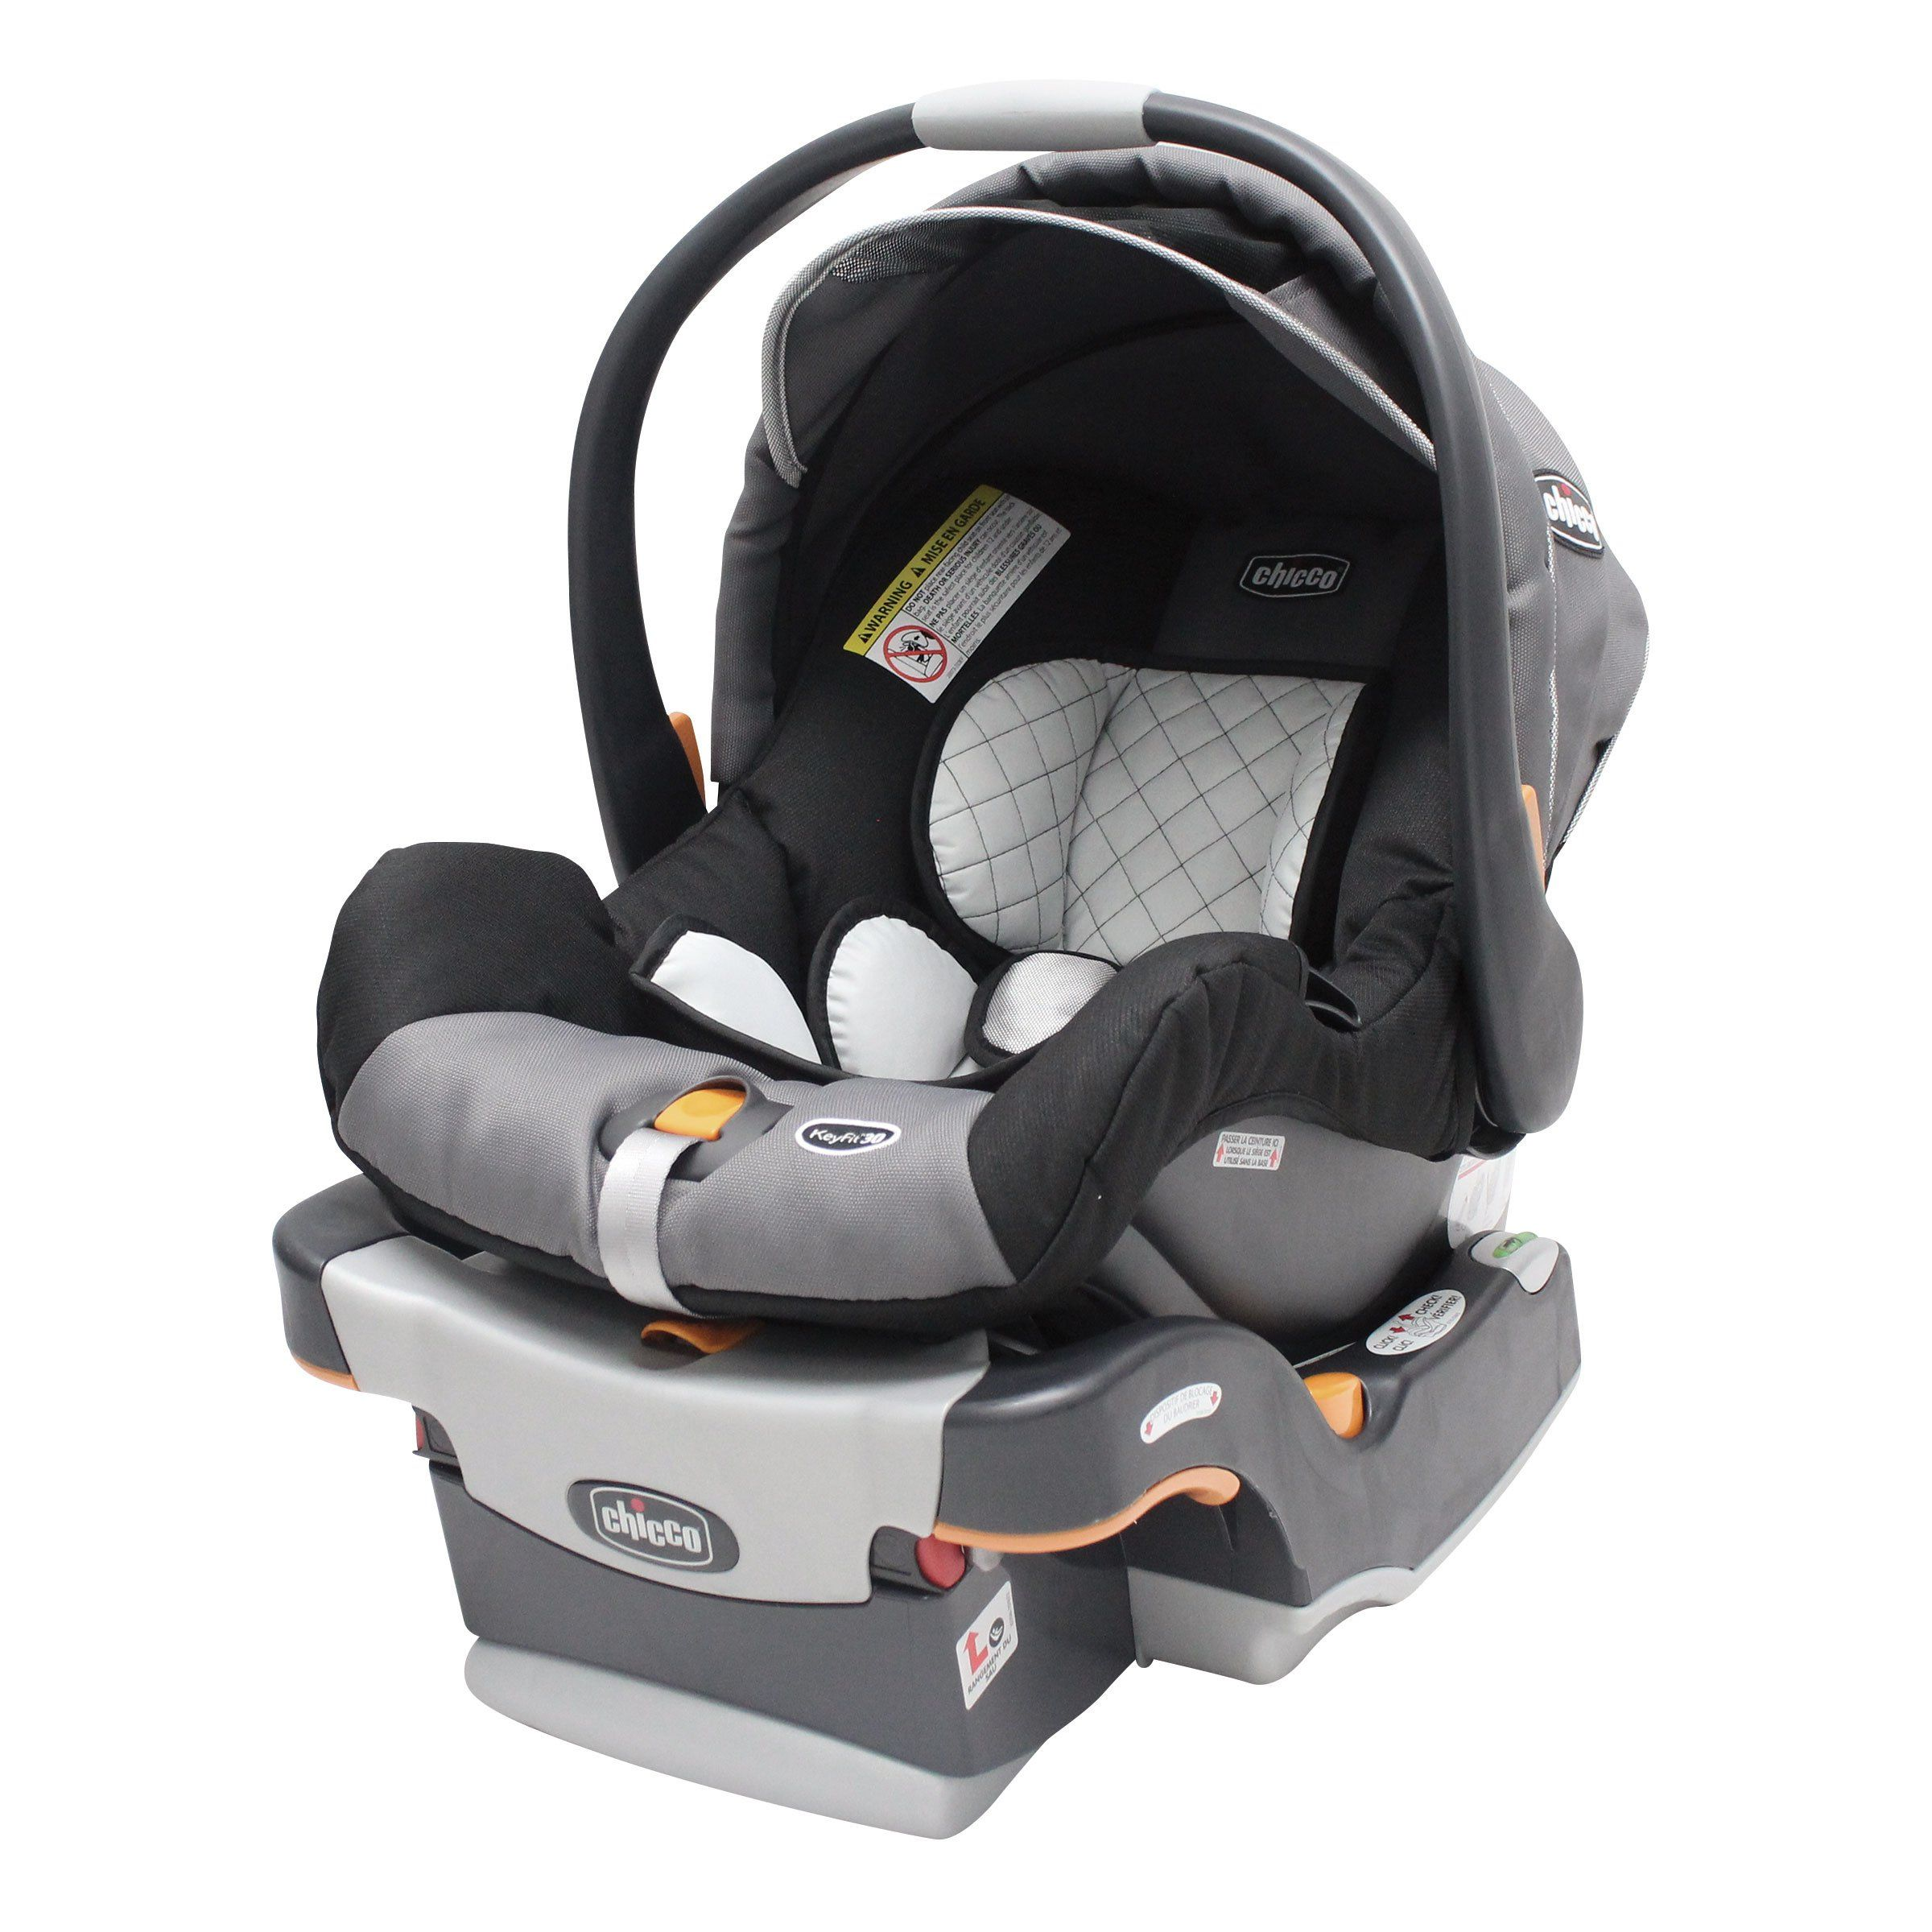 Keyfit 30 Infant Car Seat Orion Chicco Baby Car Seats Baby